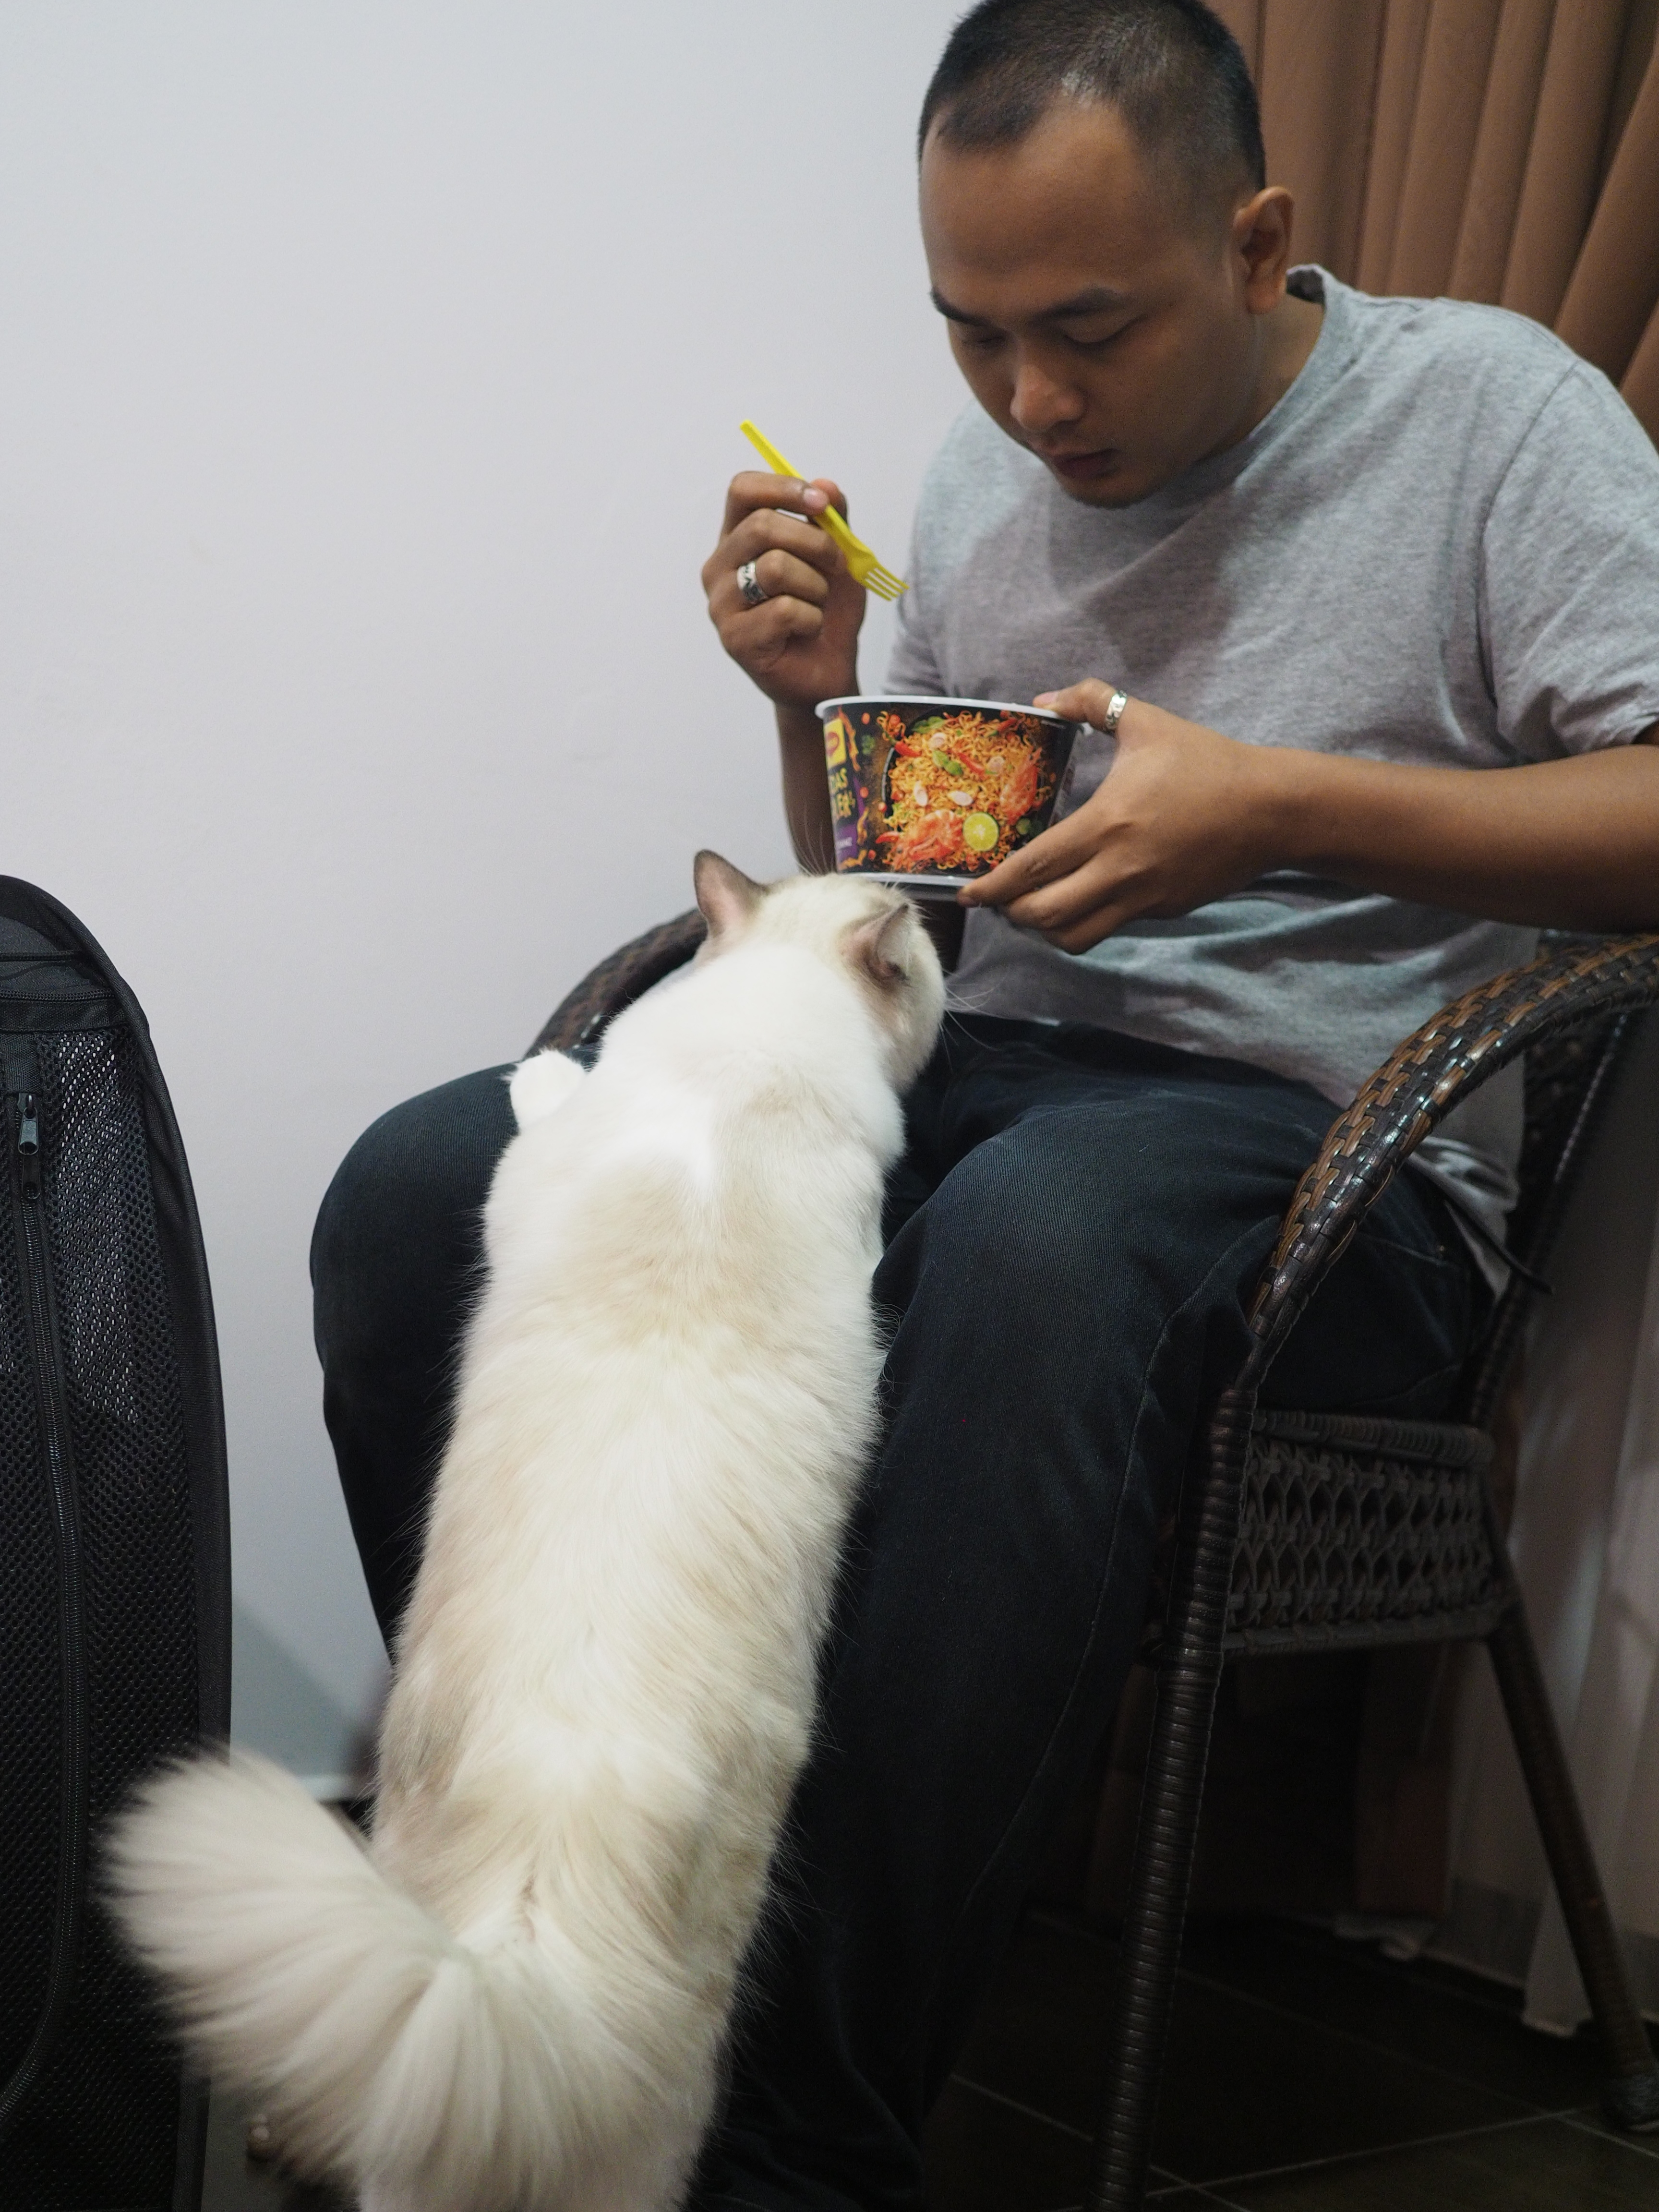 Ucool wants some spicy noodle too Uncle Jiimy!